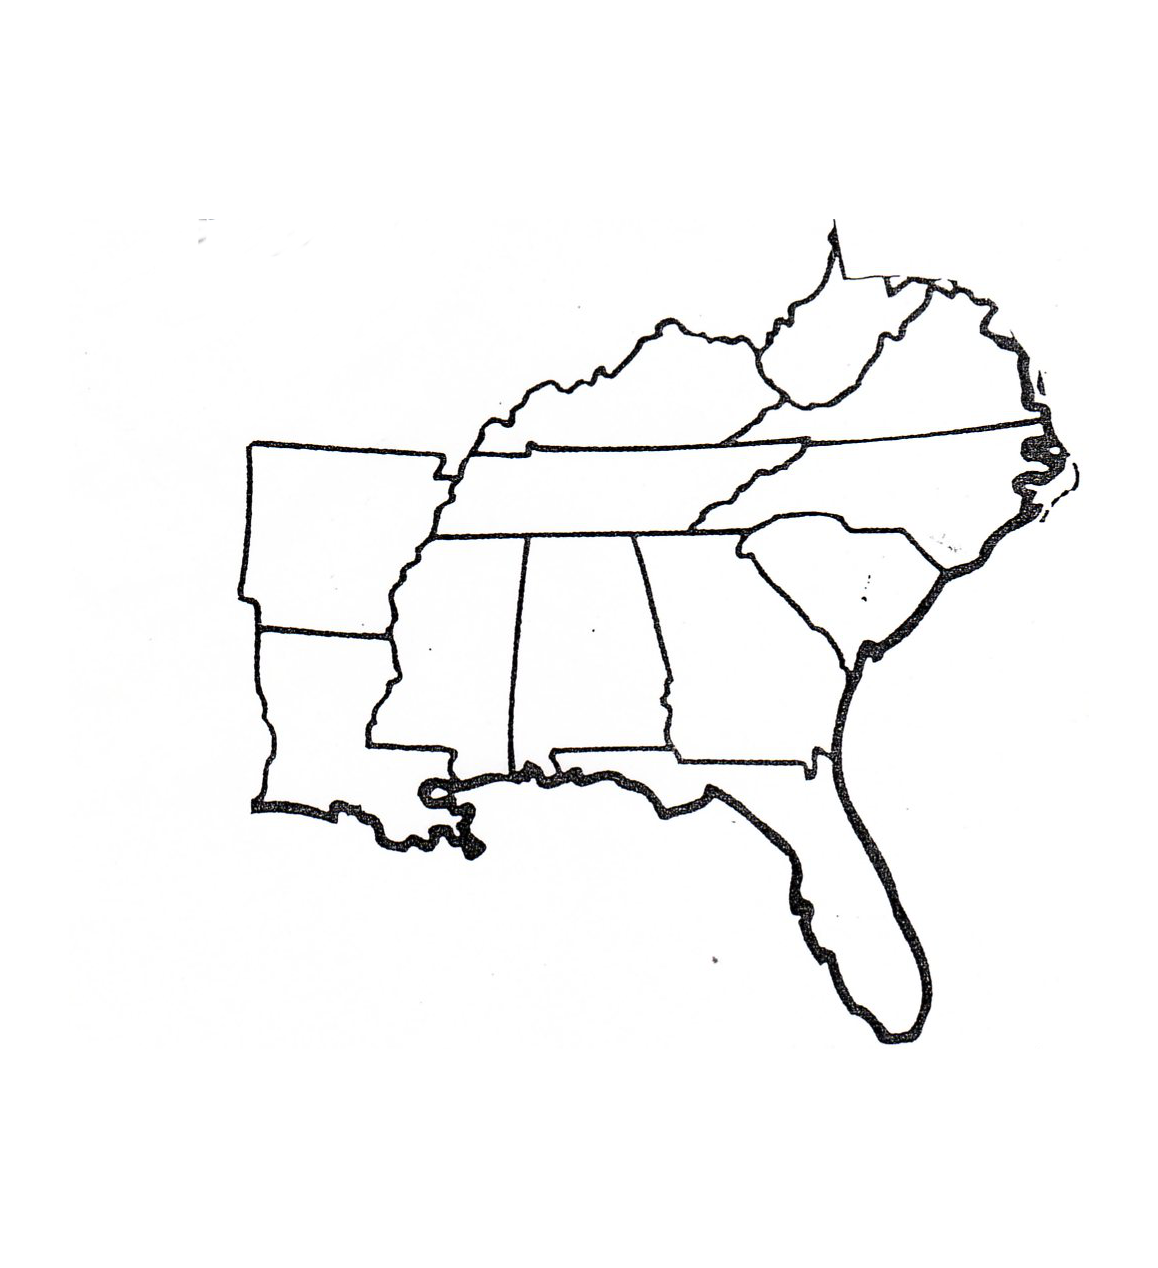 Blank Map Of Southeast Us Blank Map Of Southeast Region Within Us | Southeast region